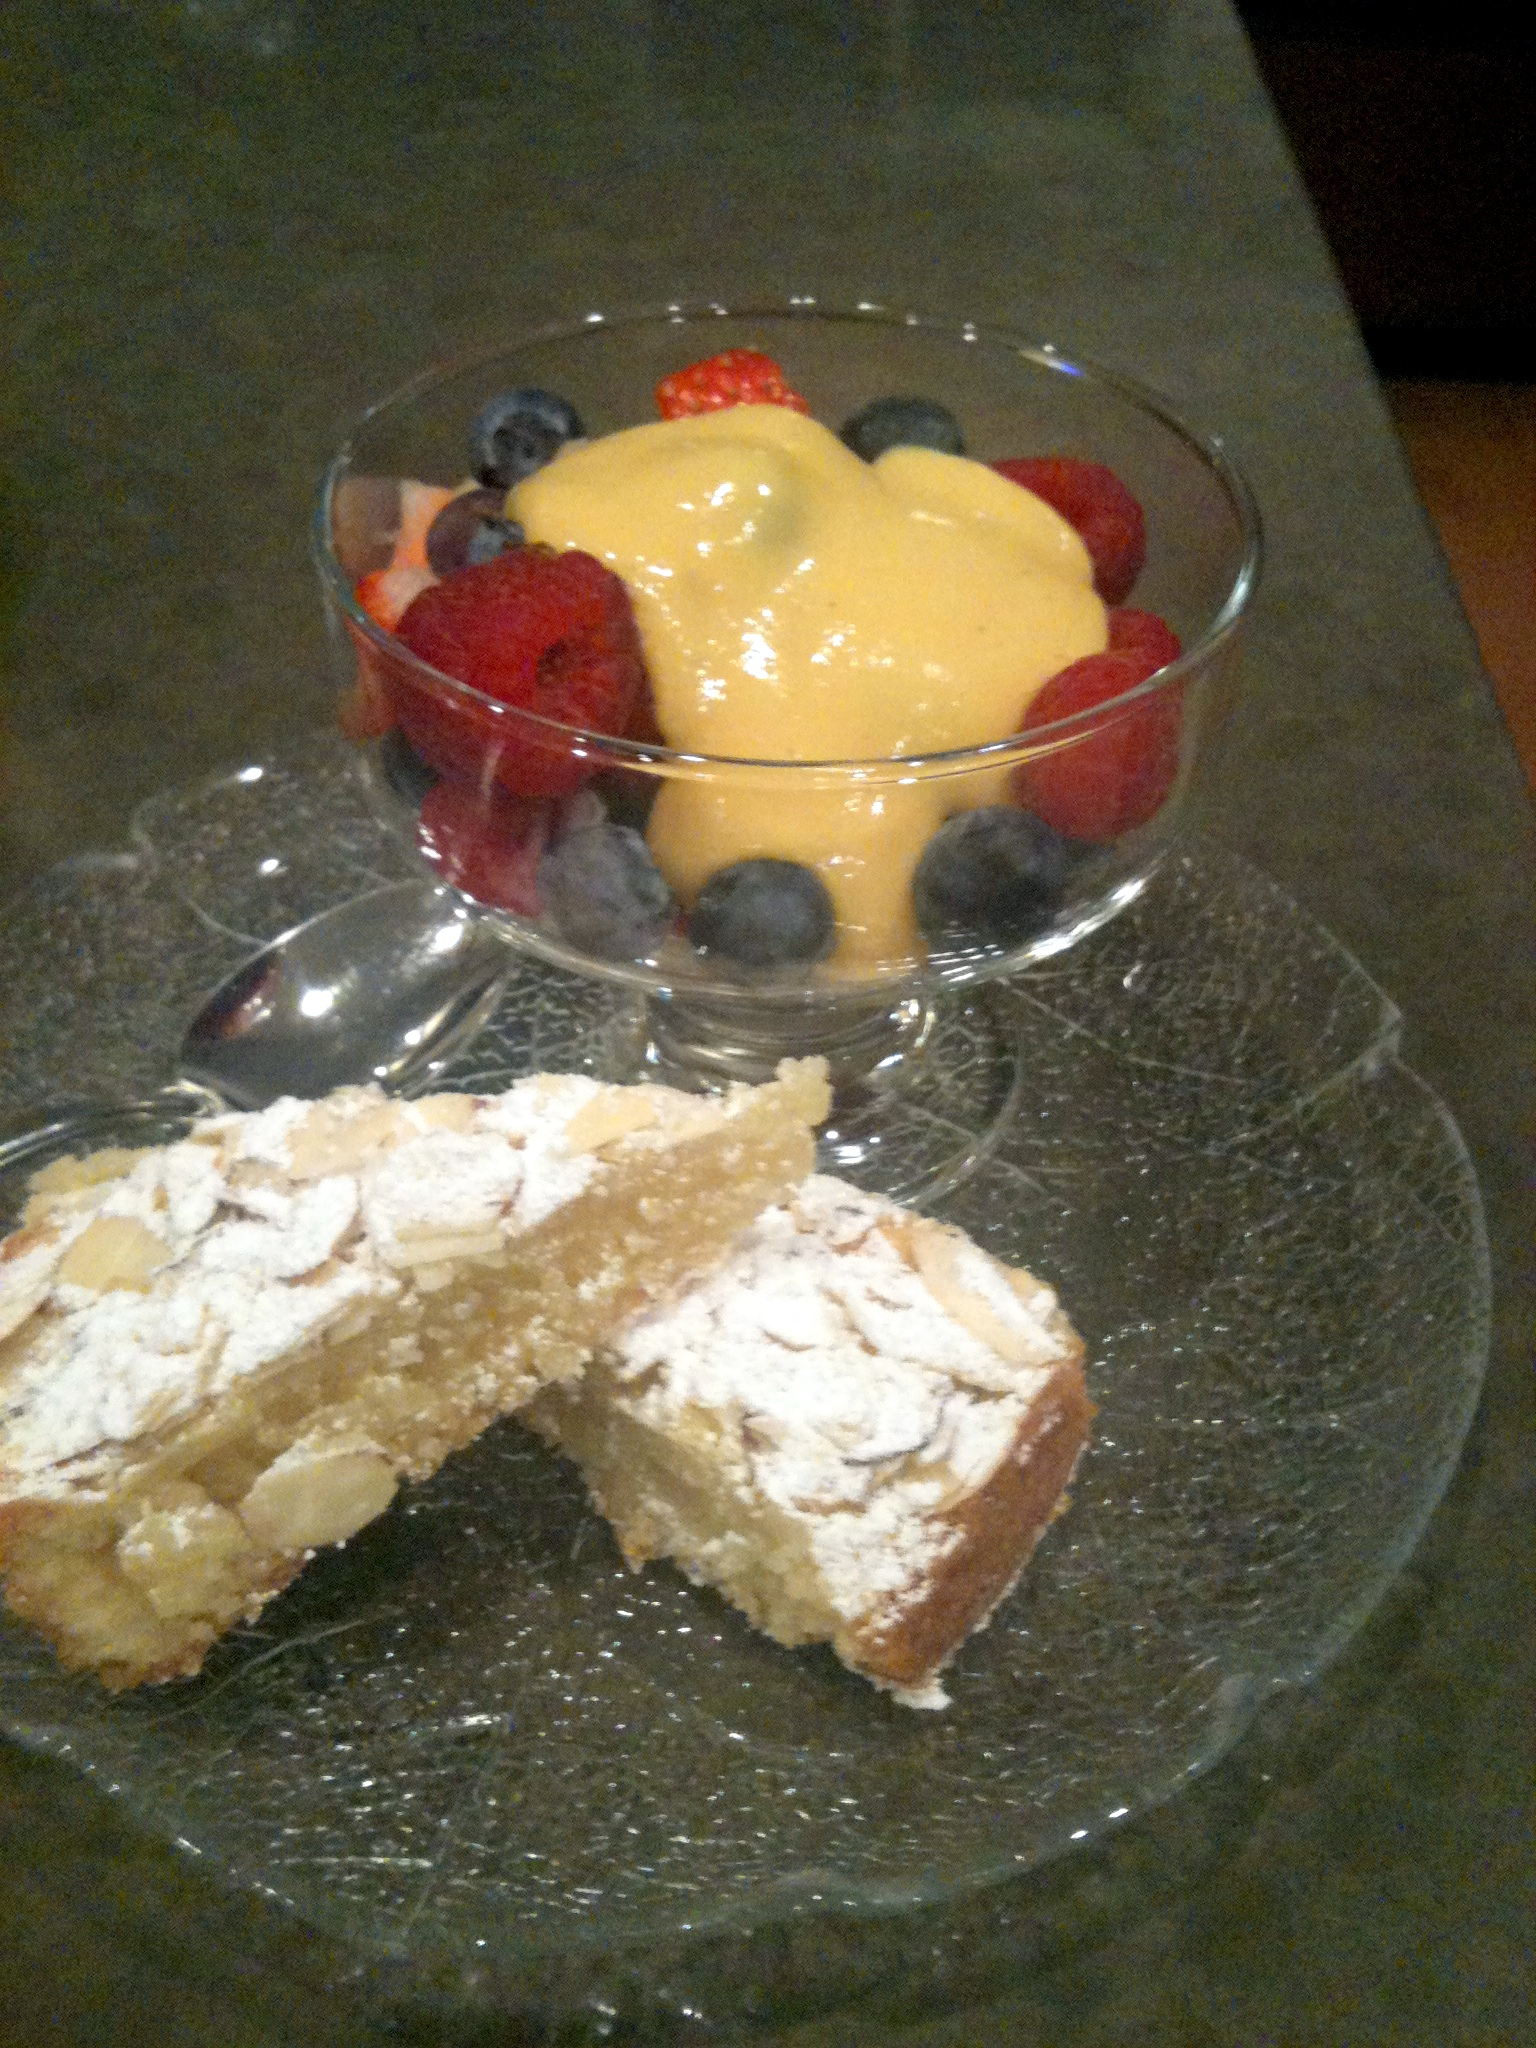 Gluten Free Tips and Techniques: Simple Gluten Free Desserts | urbnspice.com